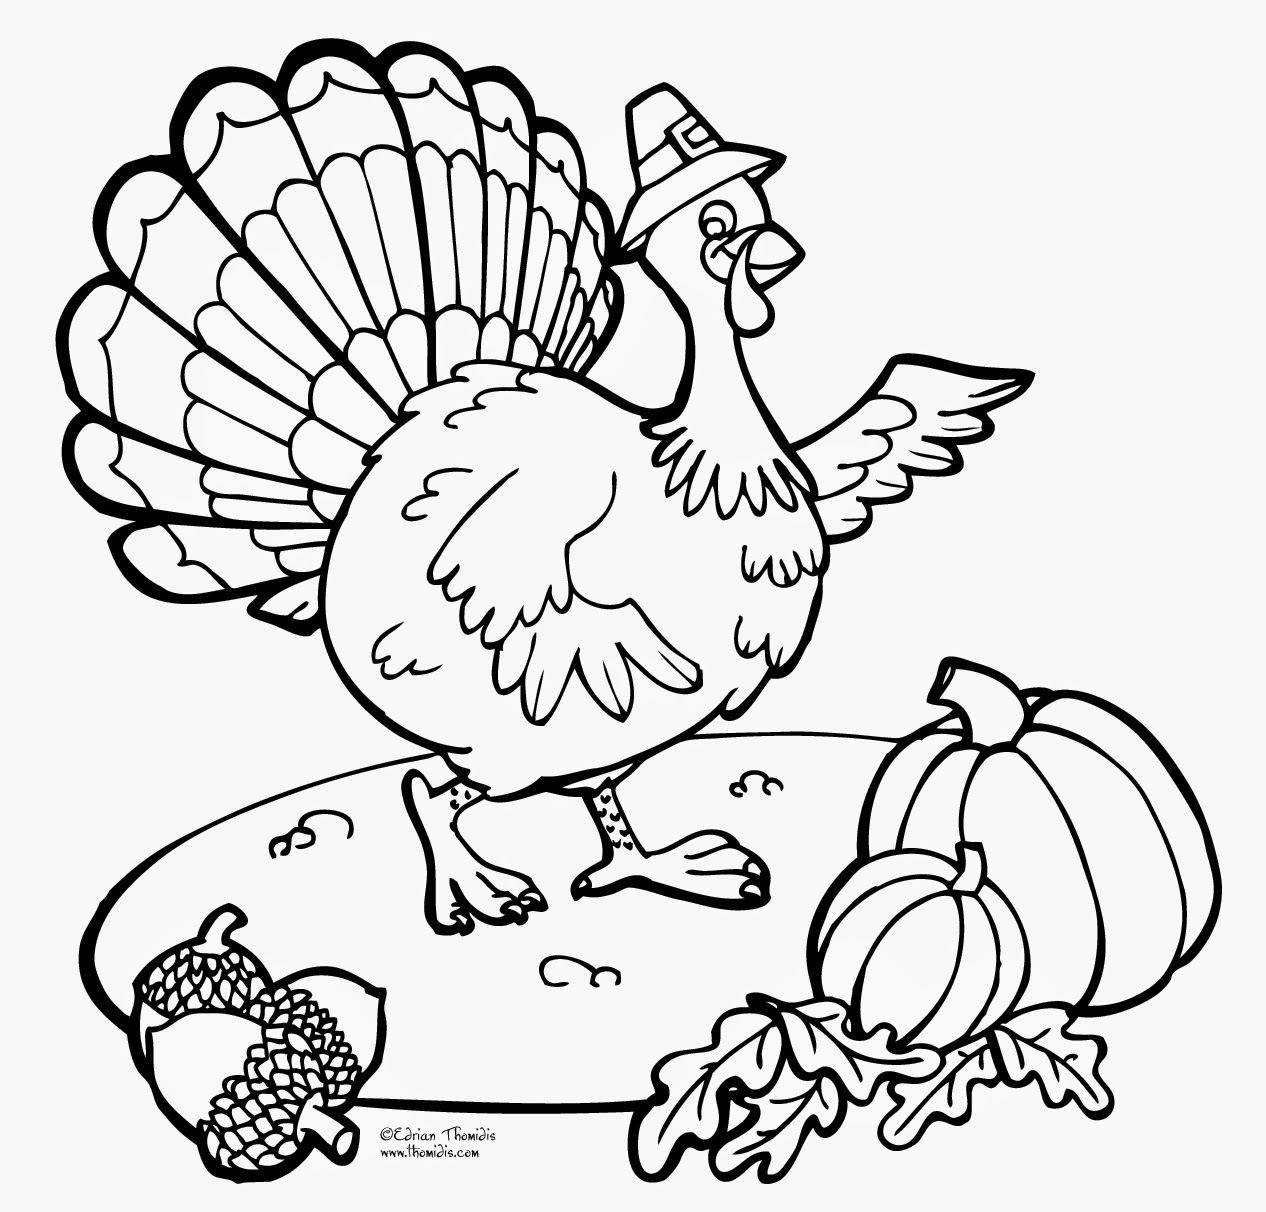 Thanksgiving day printable coloring pages minnesota miranda for Thanksgiving coloring pages already colored